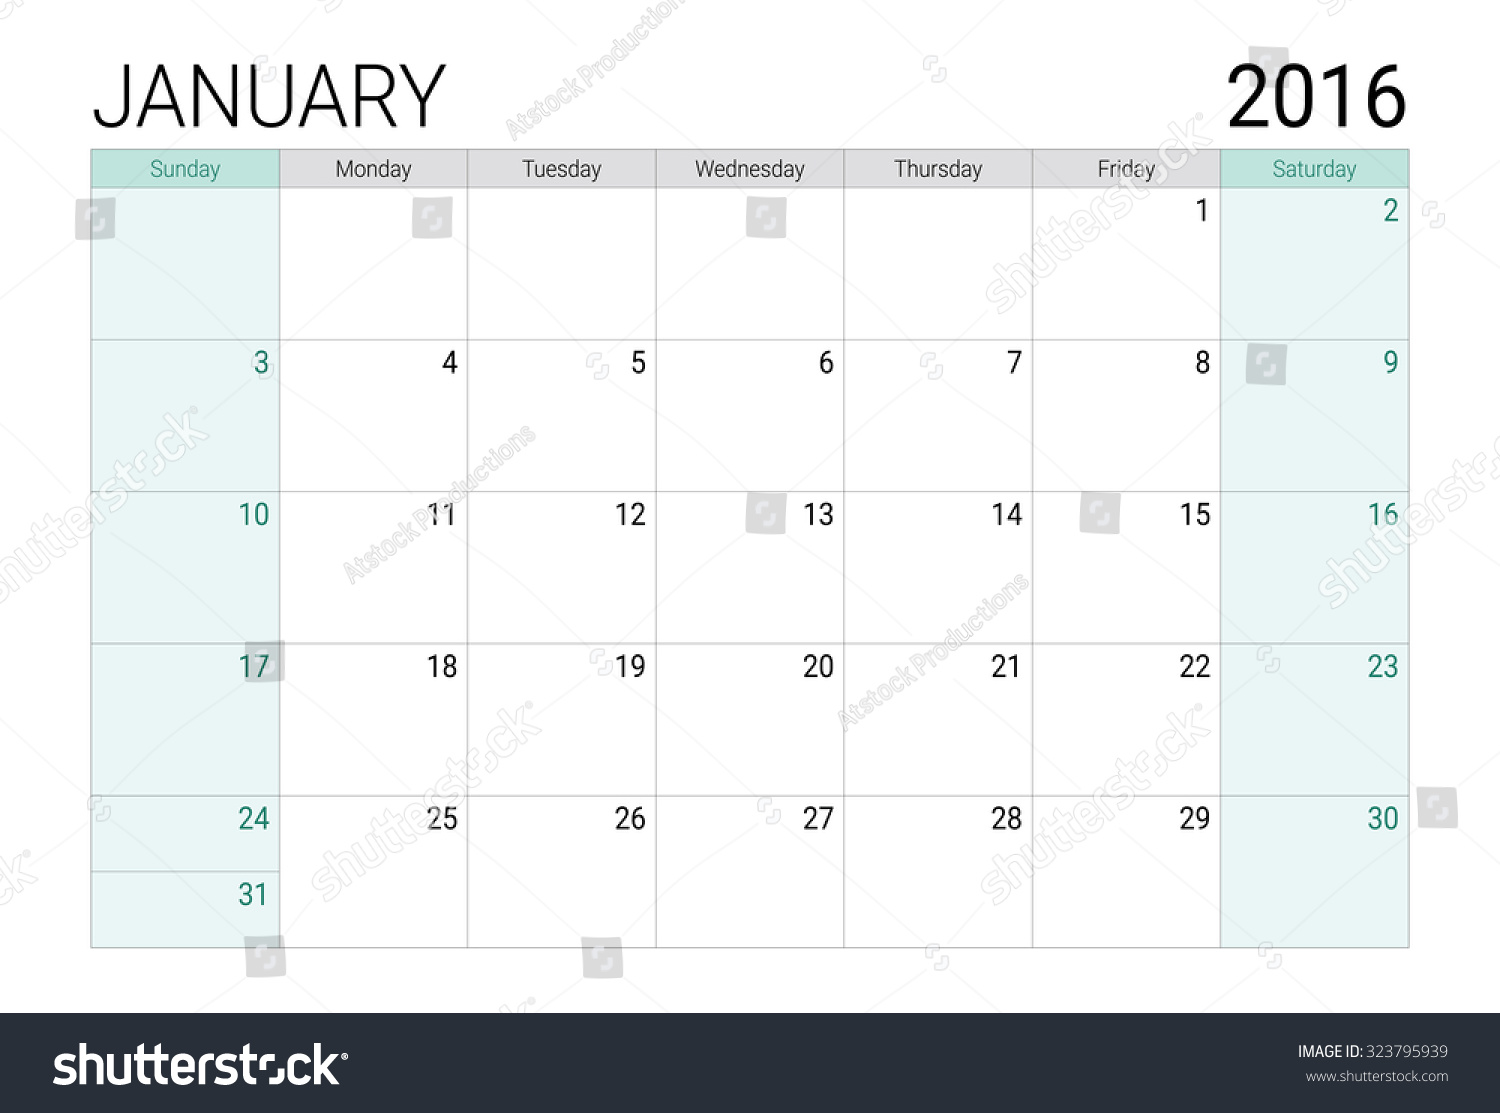 Desk Calendar Planner : January calendar or desk planner stock vector